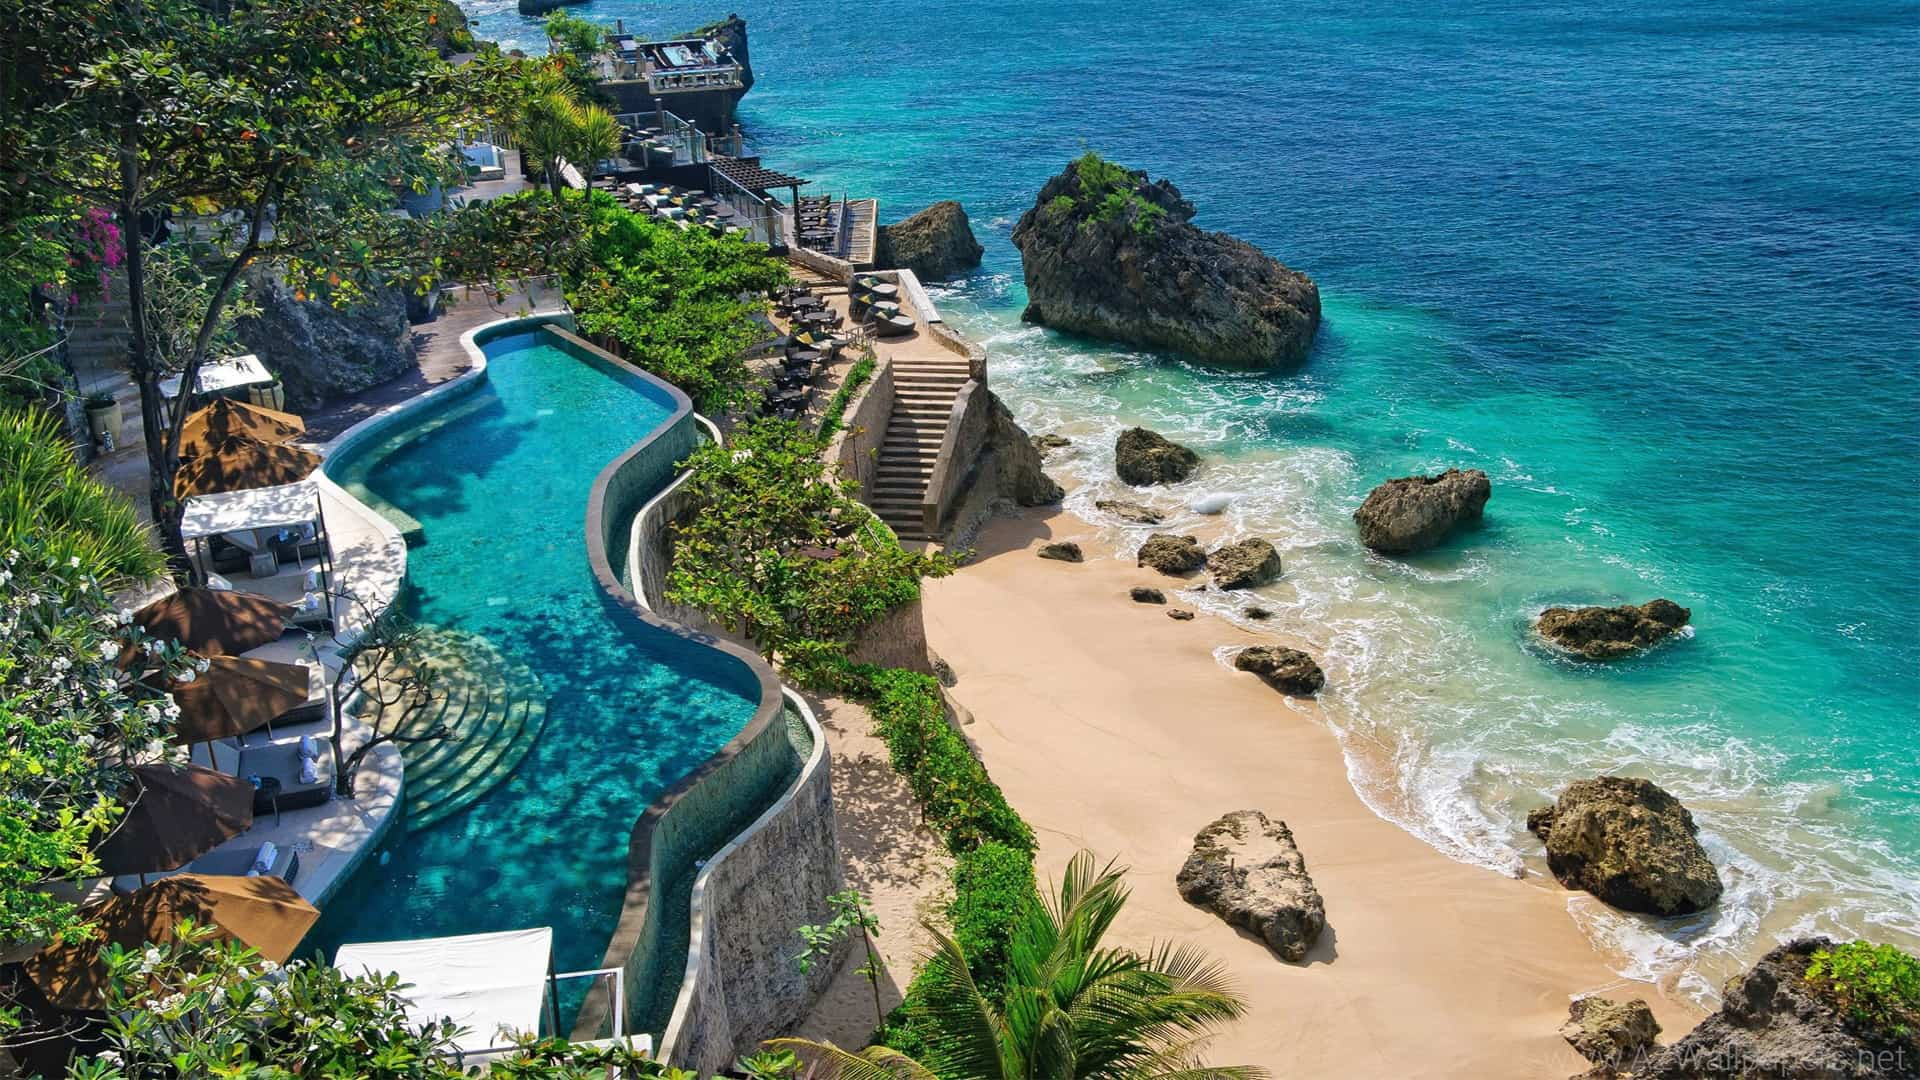 The Villas At Ayana Resort Bali Indonesia Book At The Luxe Voyager